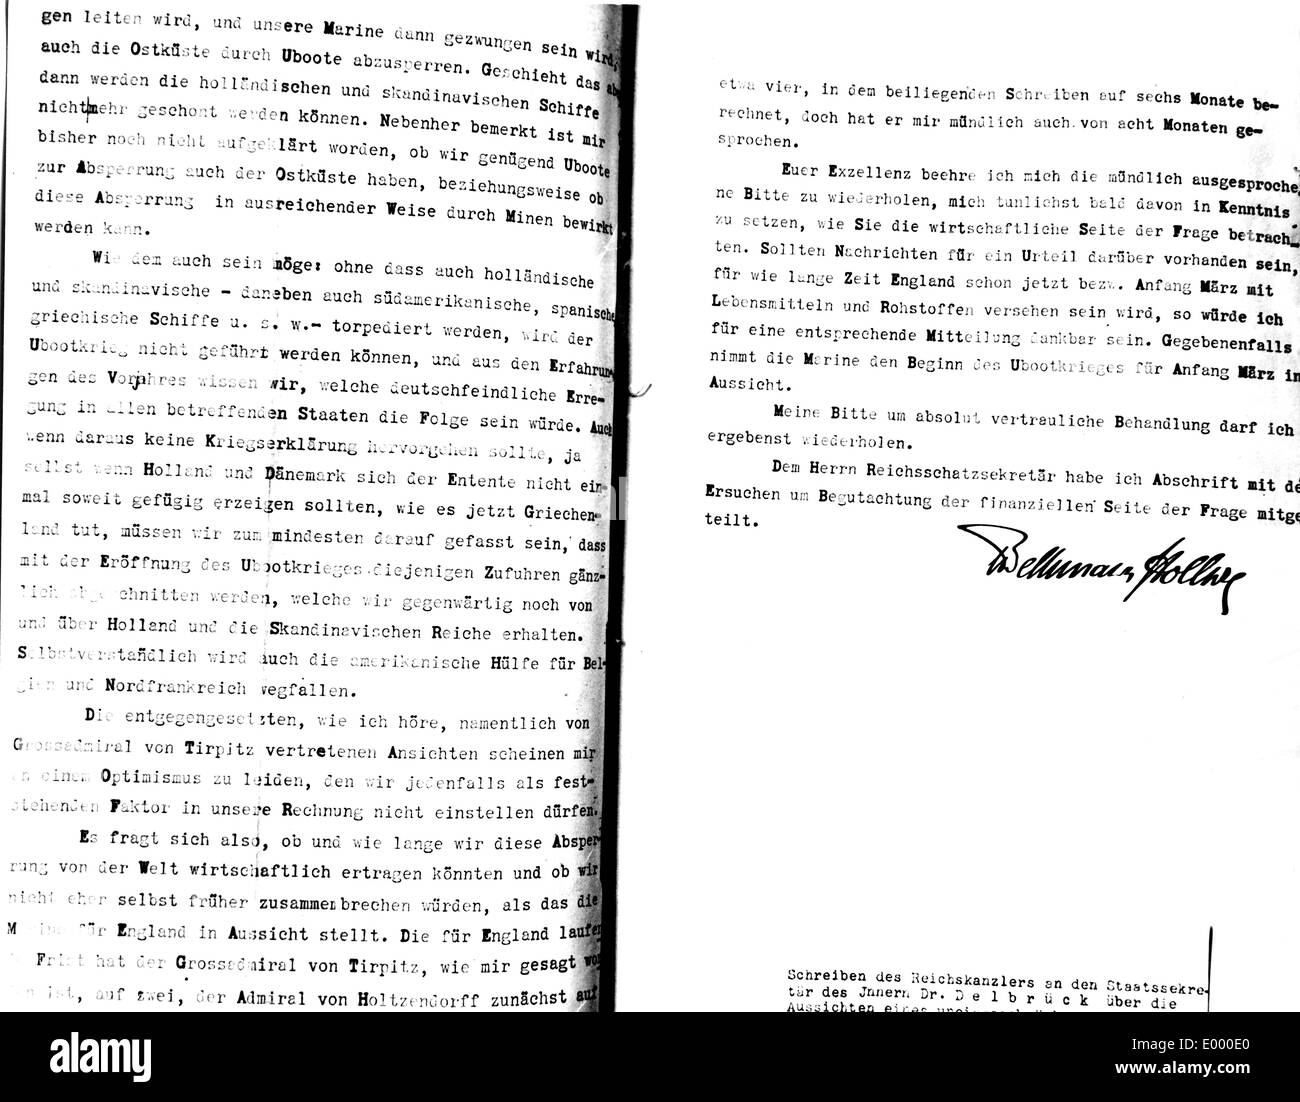 Letter about submarine warfare, 1916 - Stock Image